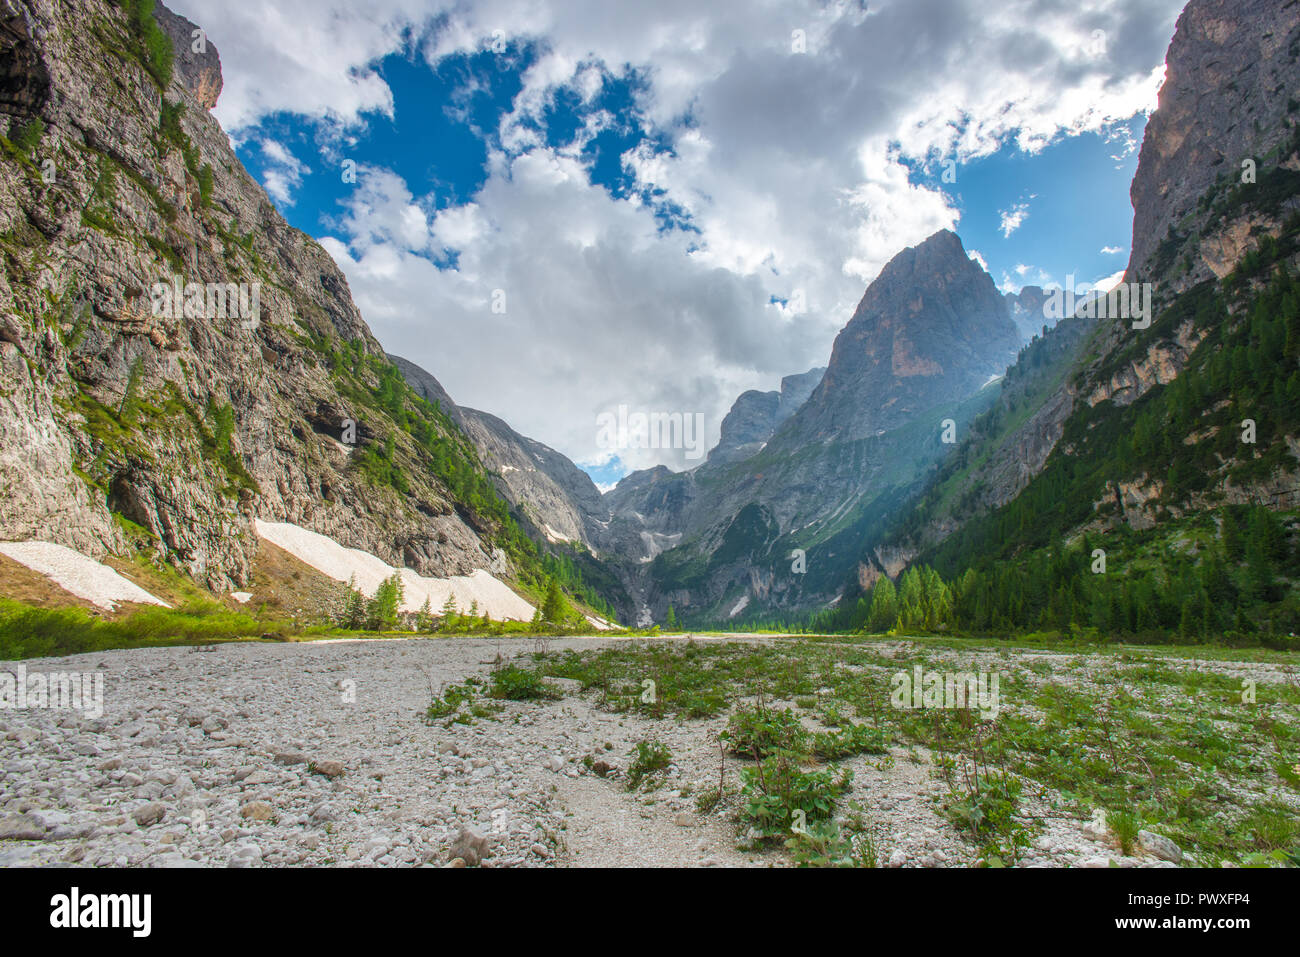 Fantastic scene of sunlight filtering from the rocky peaks down to the valley bottom. Hiking in the wild, solitude, unspoiled mountain destination. Stock Photo